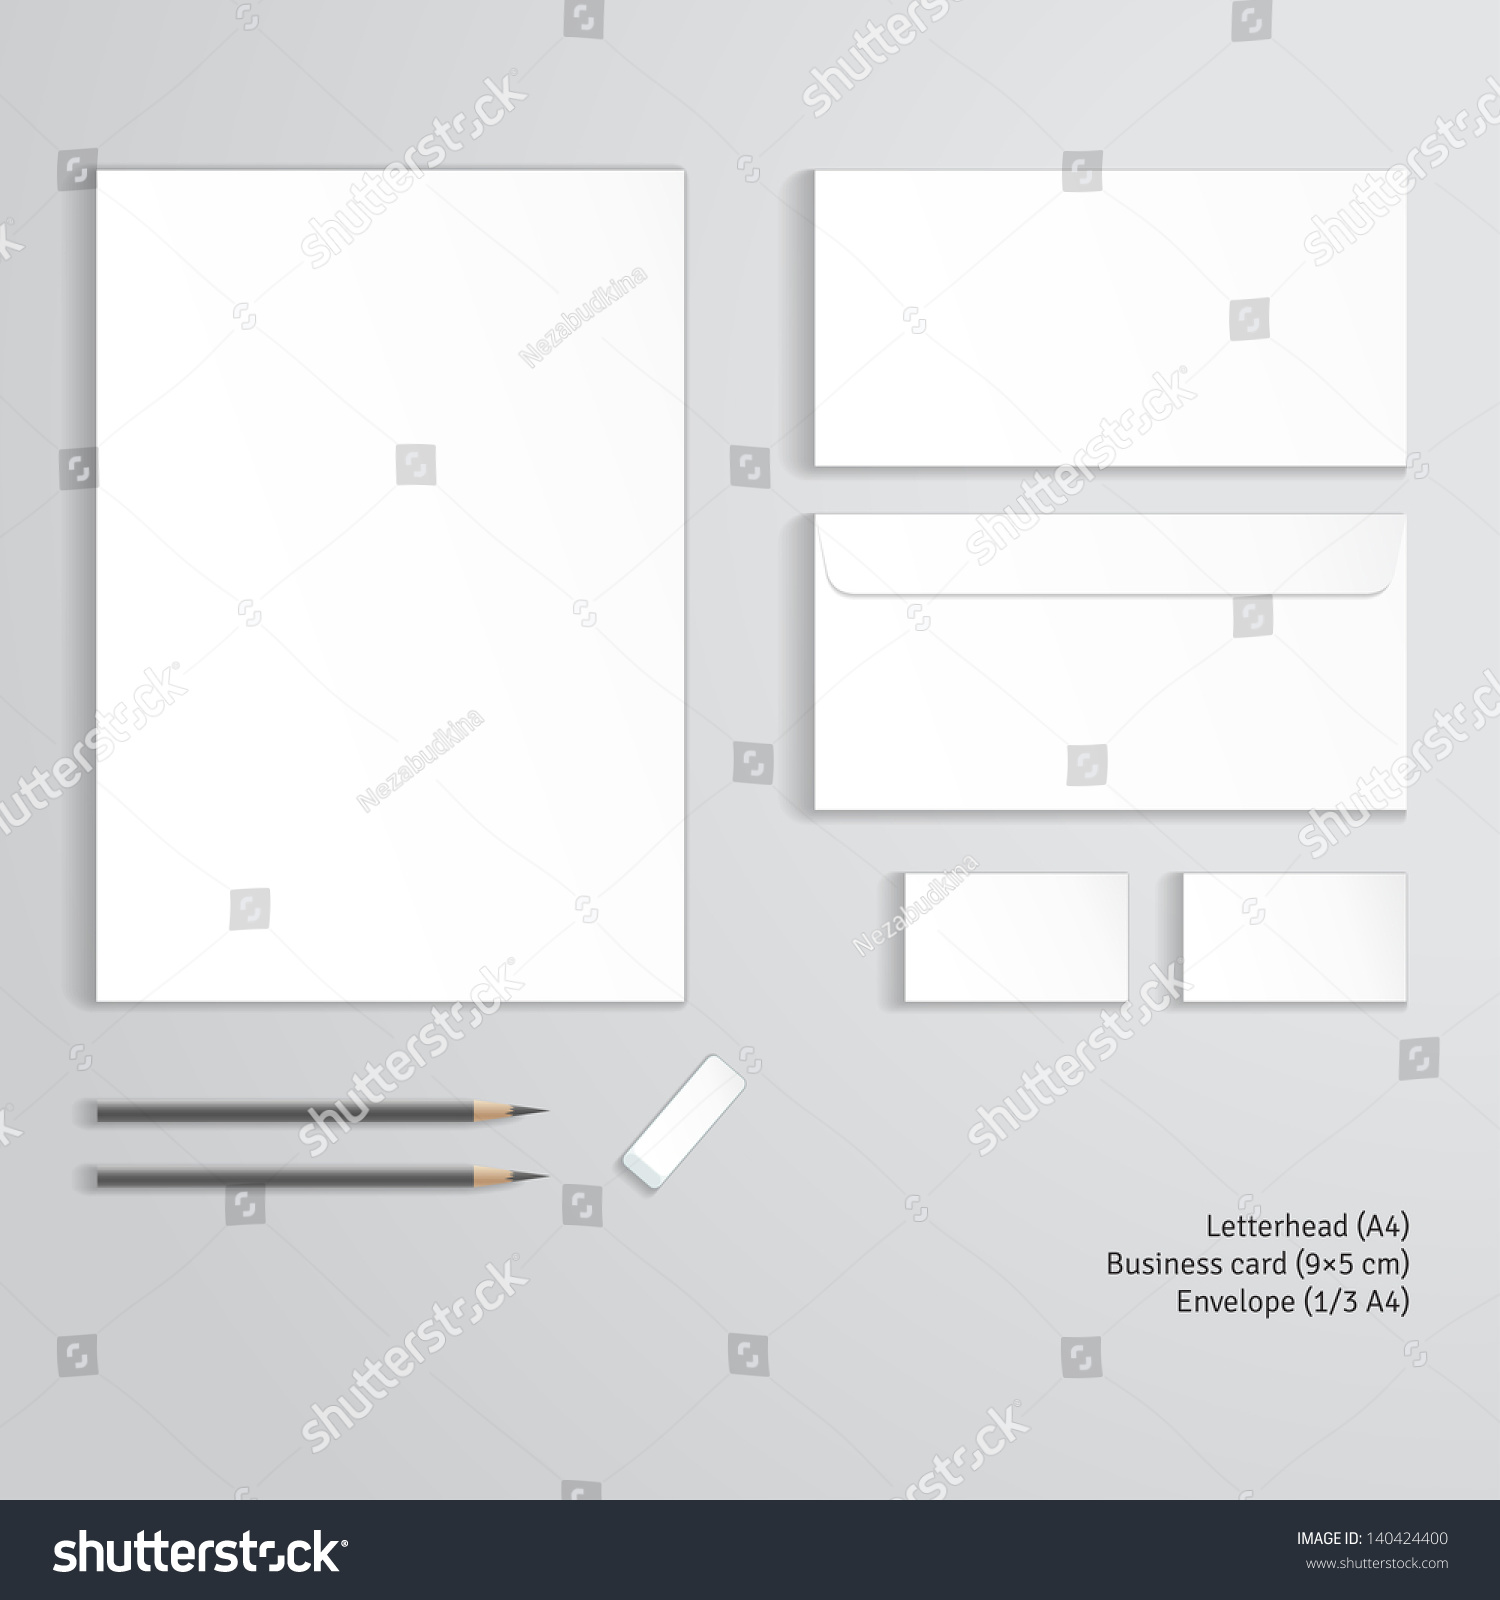 Business card envelope template mandegarfo business card envelope template friedricerecipe Choice Image